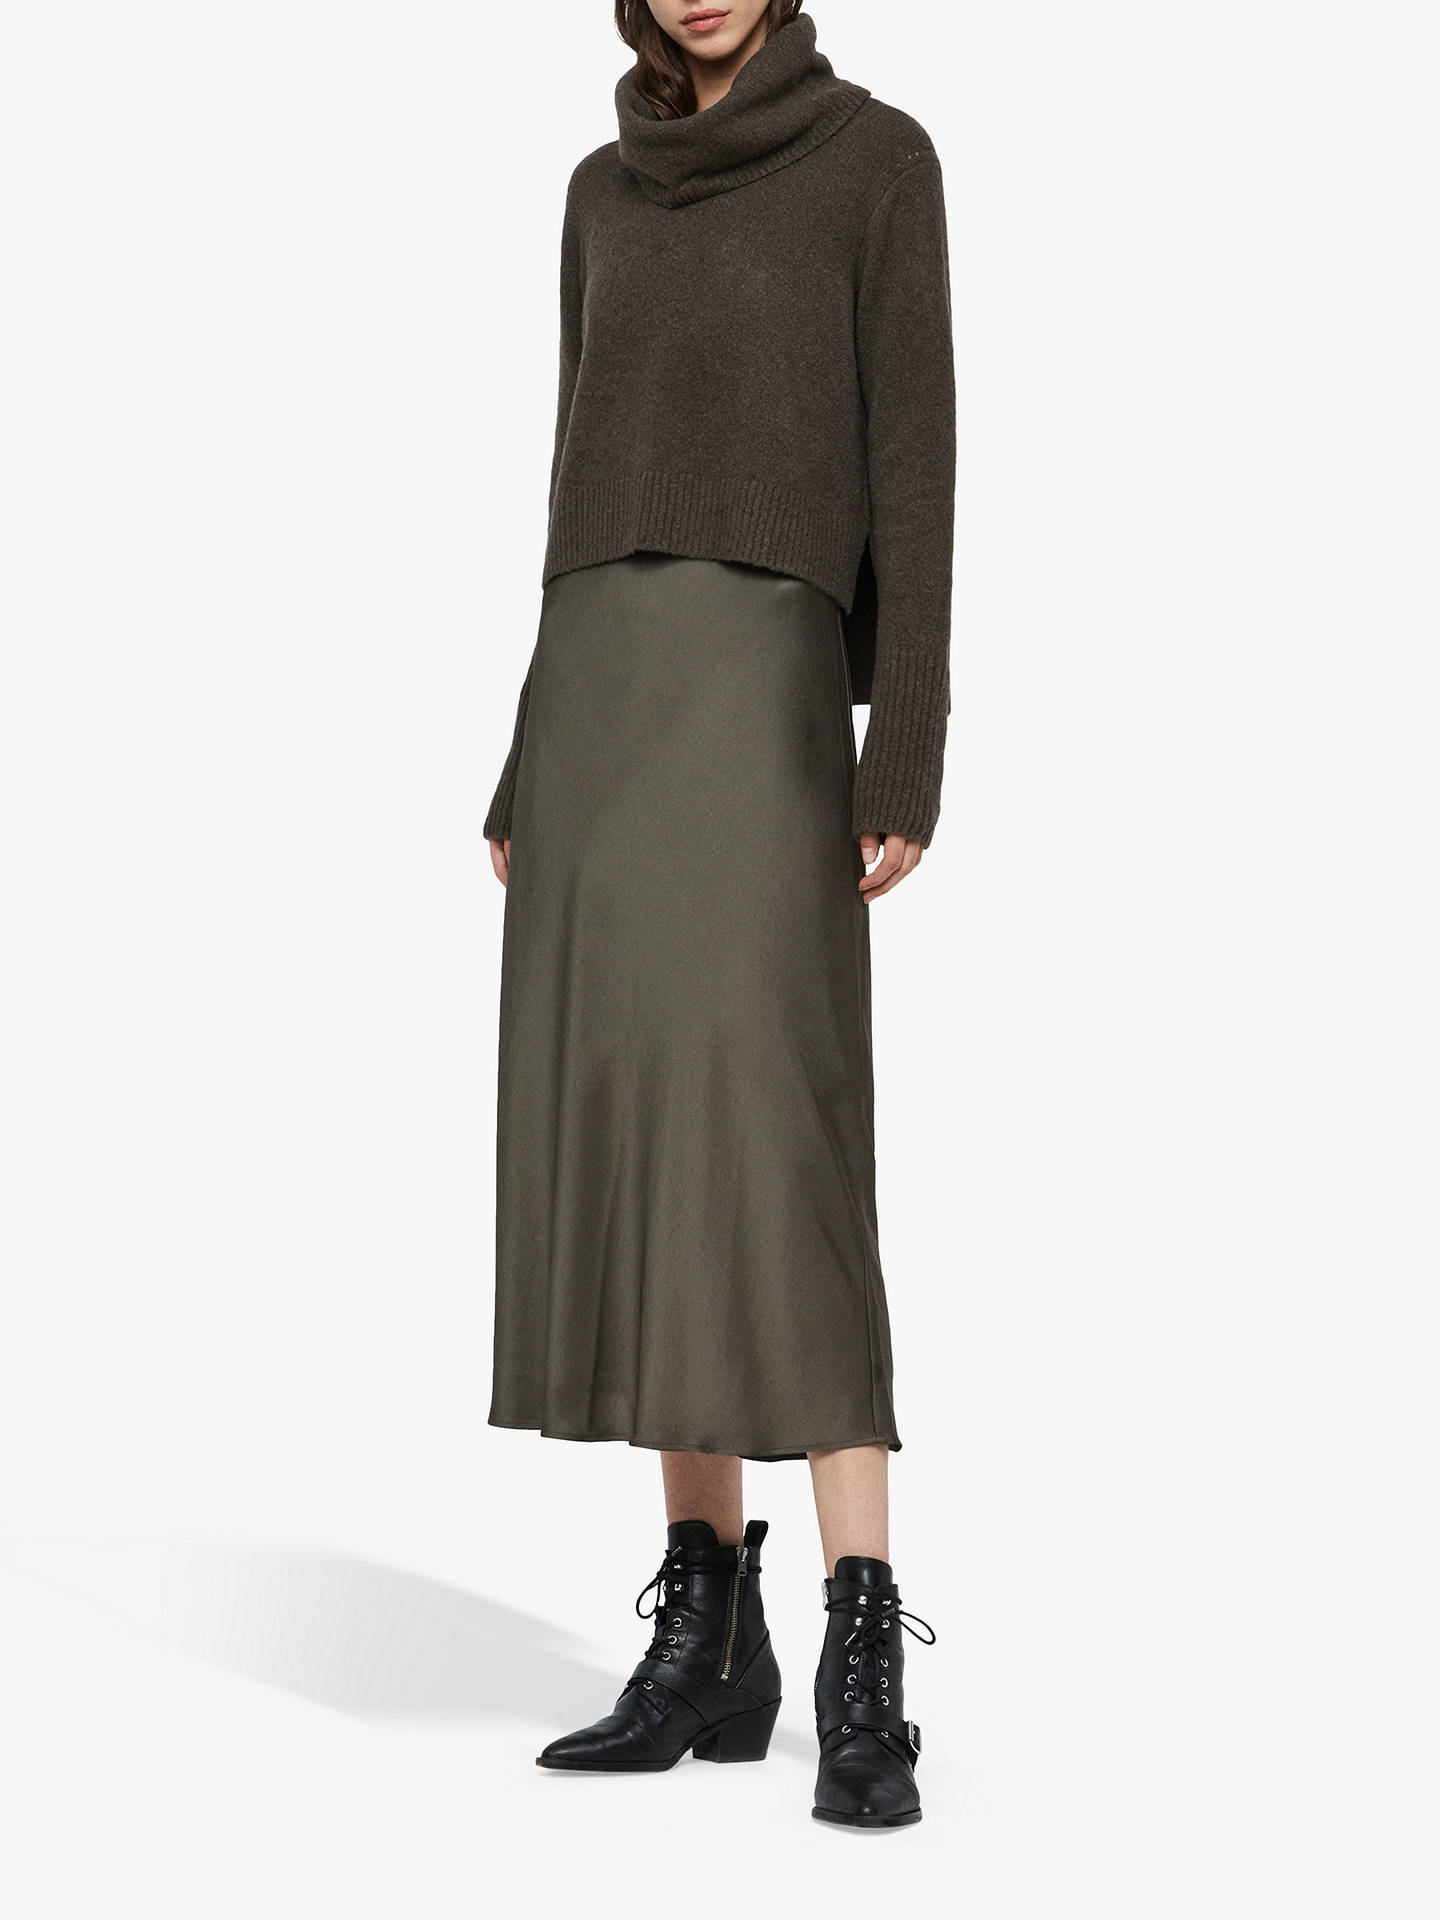 allsaints-tierny-roll-neck-jumper-dress,-military-green by allsaints